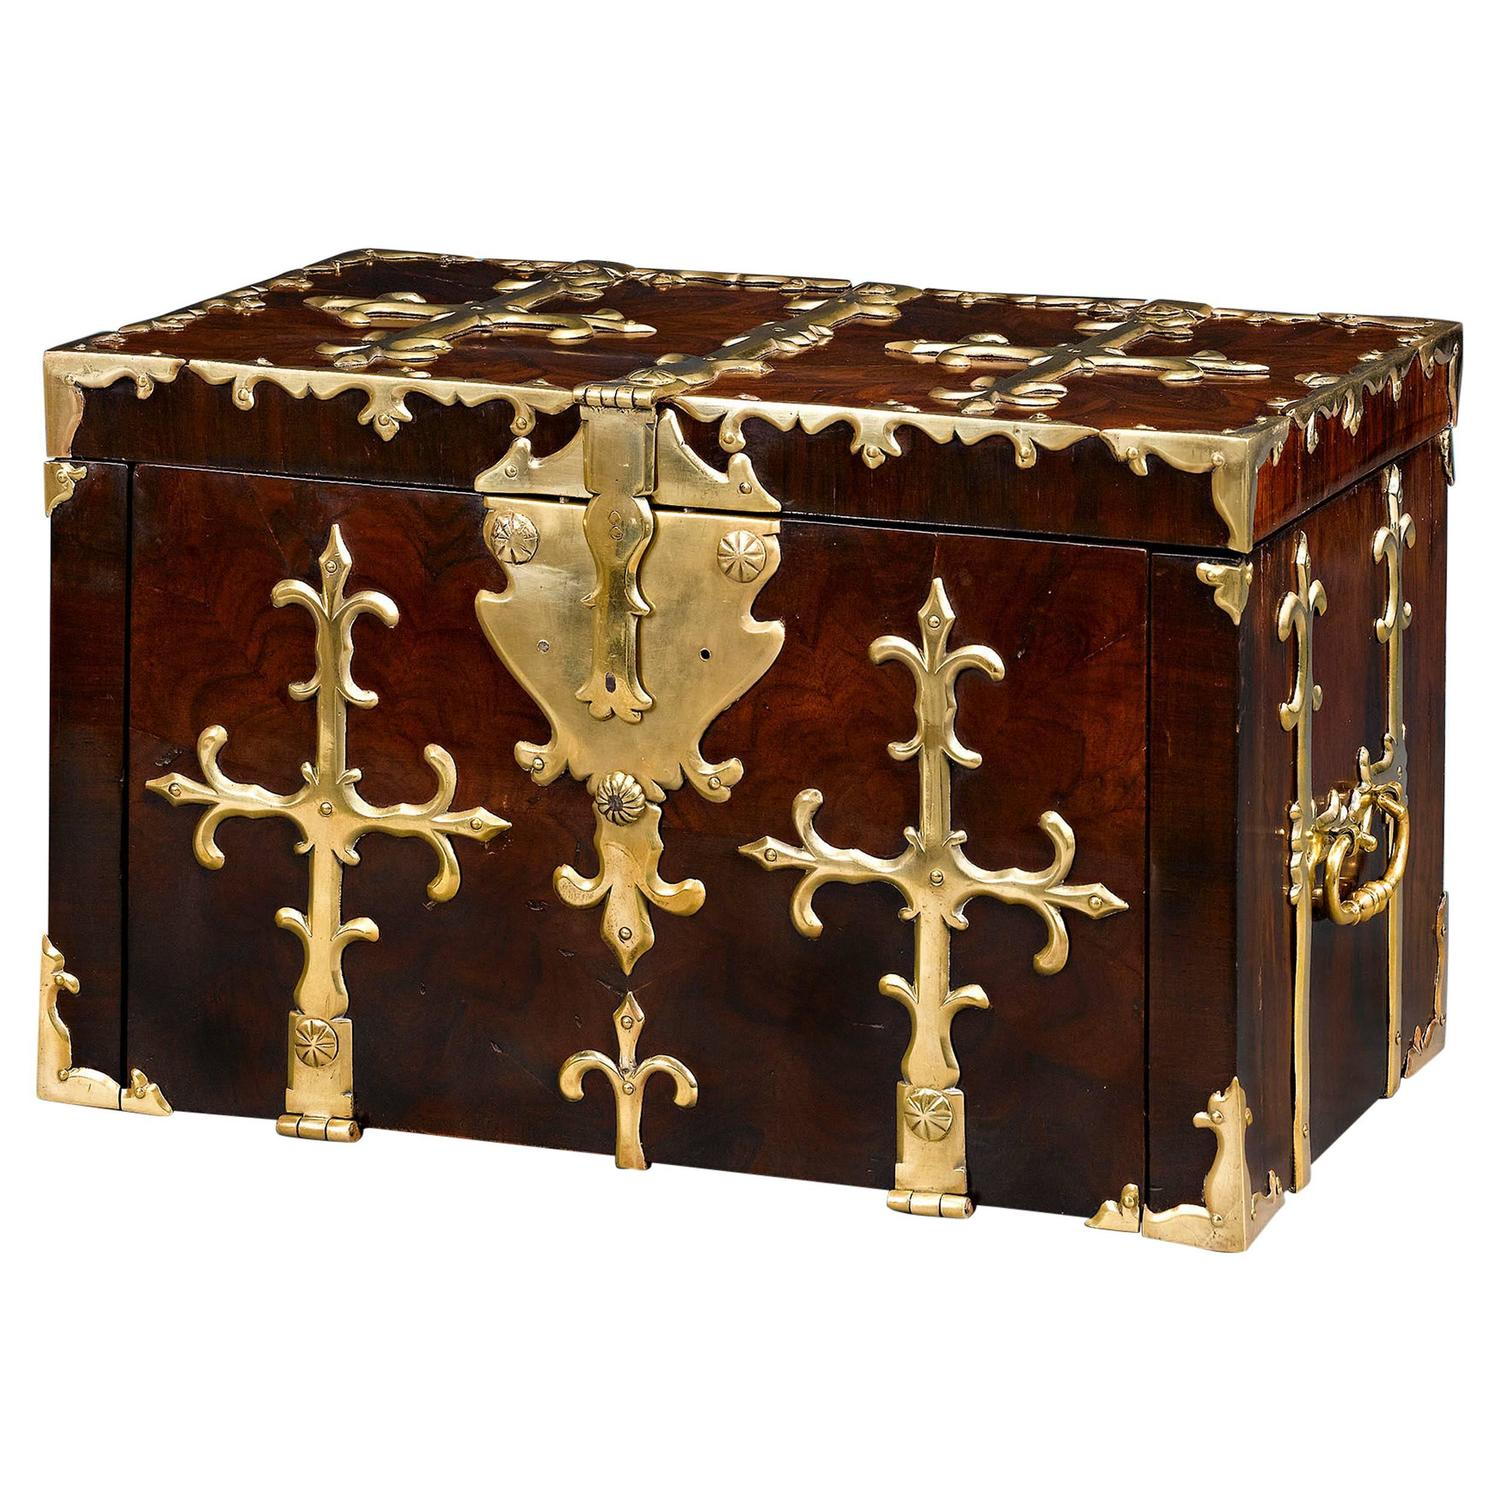 Decorative Boxes That Lock : English brass bound ship s lock box for sale at stdibs